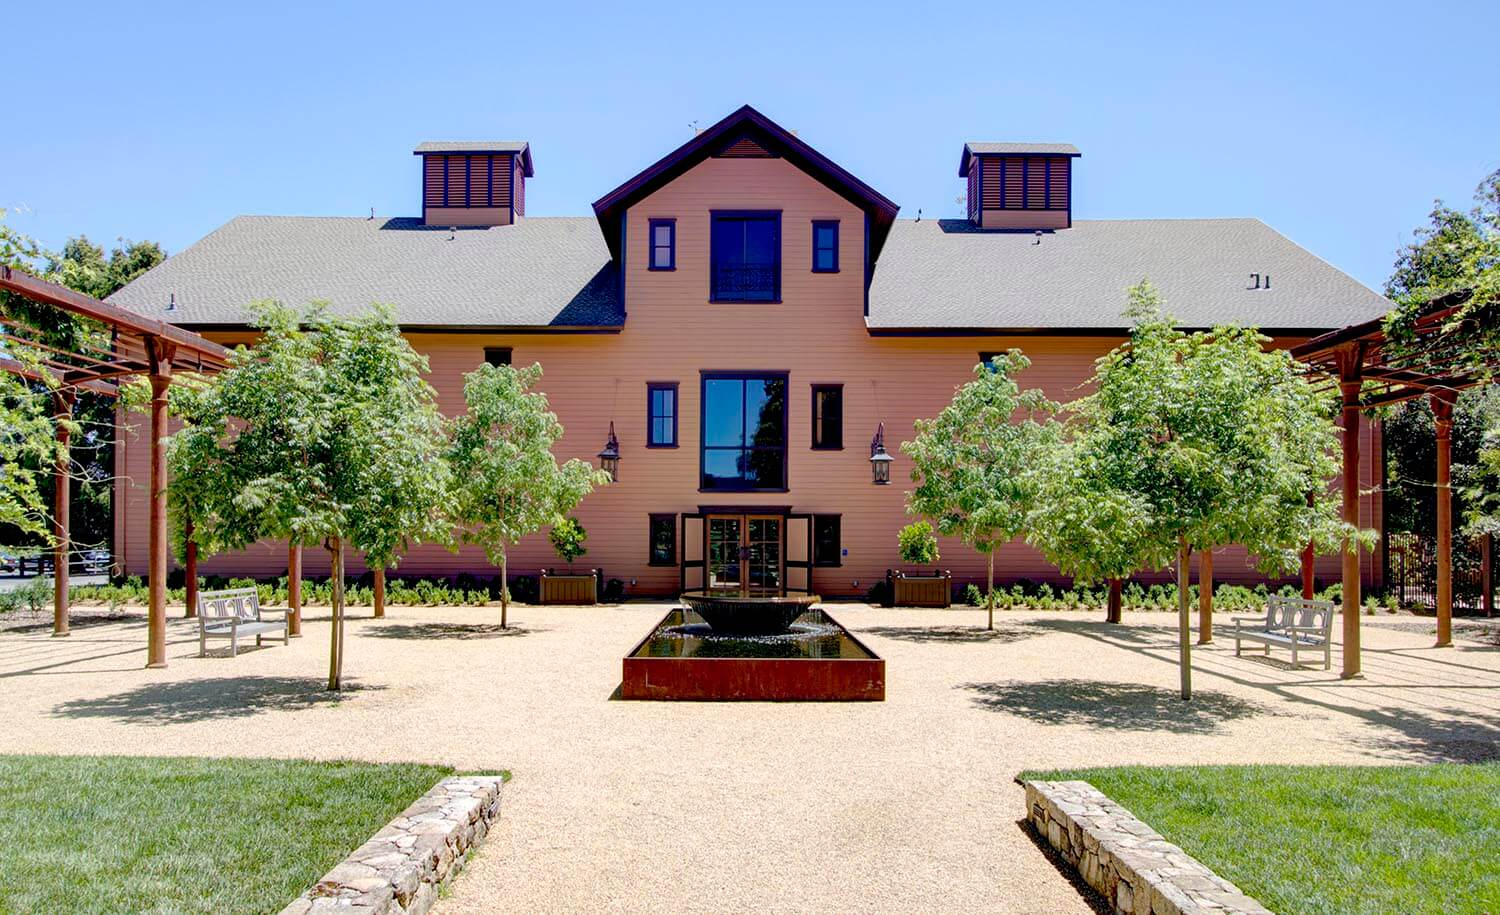 Exterior view of winery building with symmetrical, landscaped courtyard with fountain in foreground